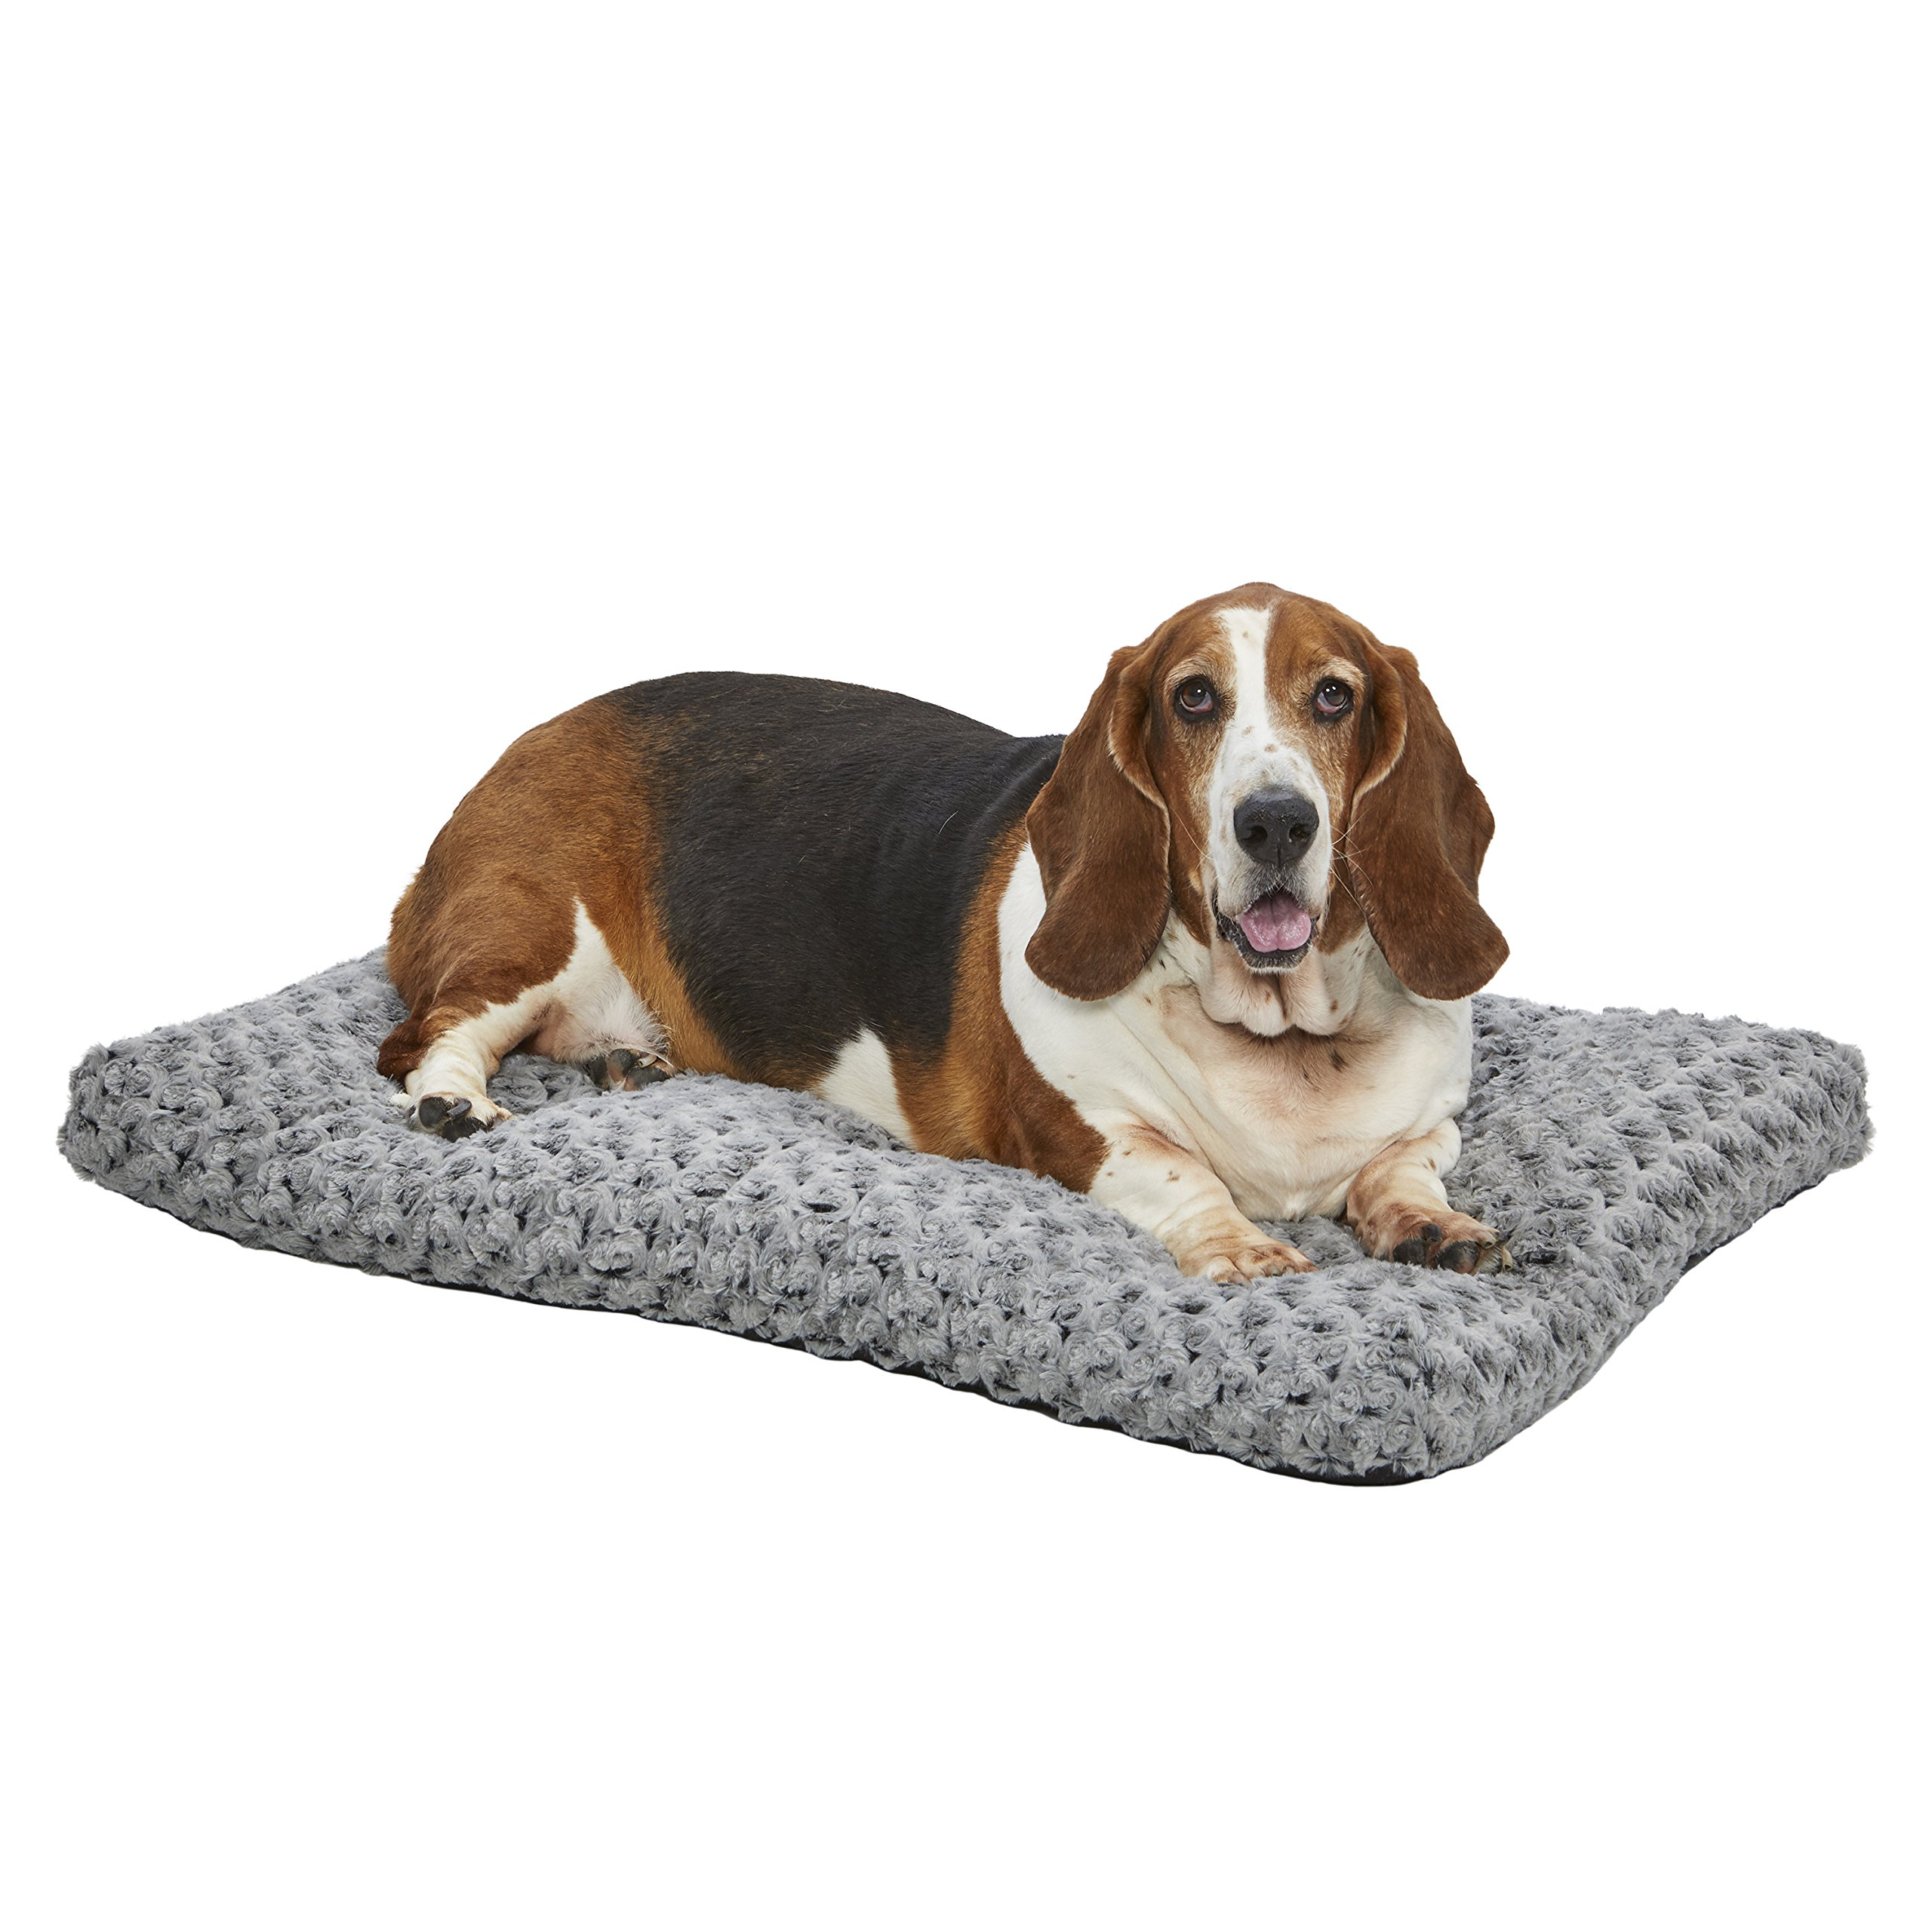 MidWest Homes for Pets Plush Dog Bed | Ombré Swirl Dog Bed & Cat Bed | Gray 35L x 23W x 2H - Inches for Med./Large Dog Breeds